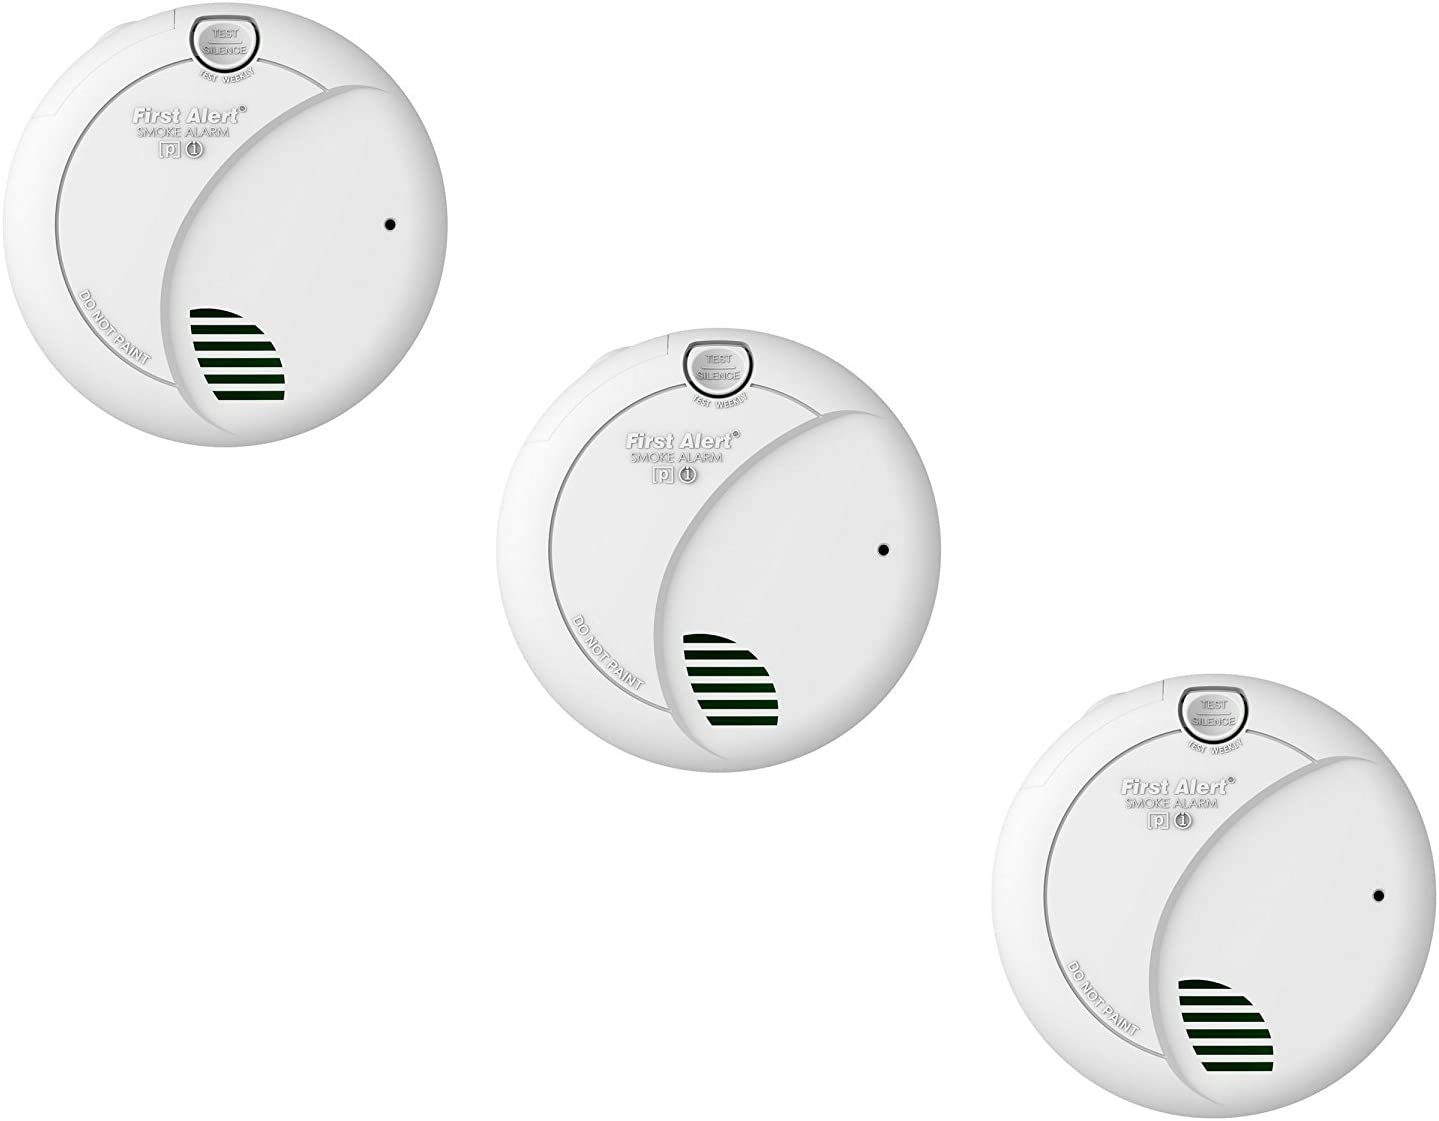 First Alert Brk 7010b Hardwire Smoke Alarm With Photoelectric